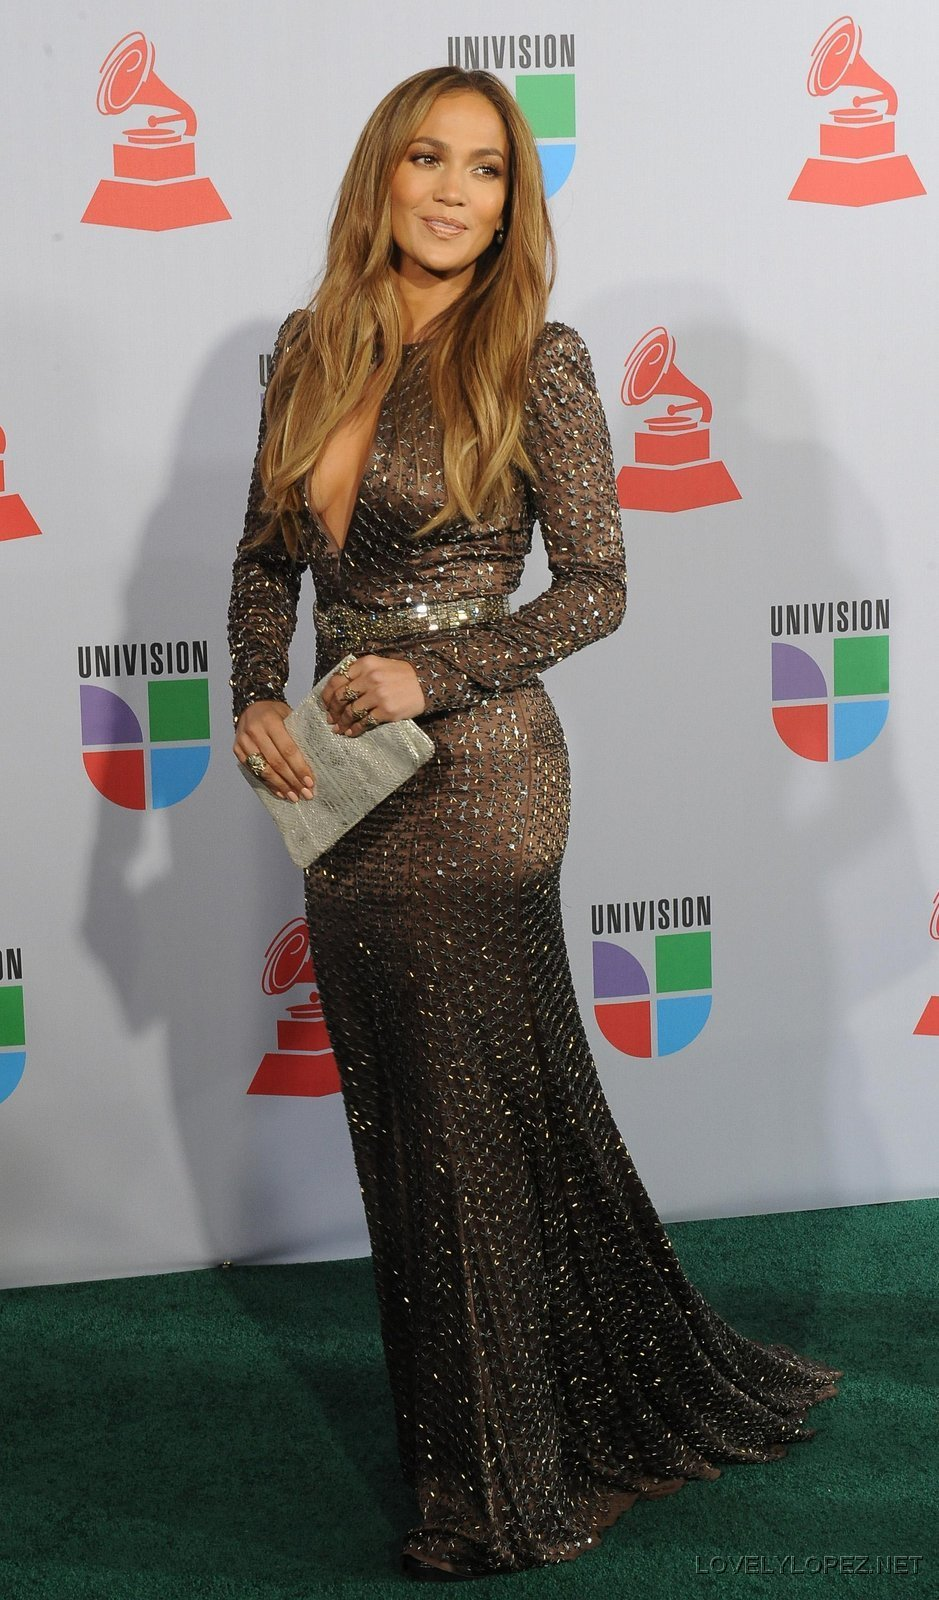 Фото Дженифер Лопес на Latin Grammy Awards в Лас-Вегасе